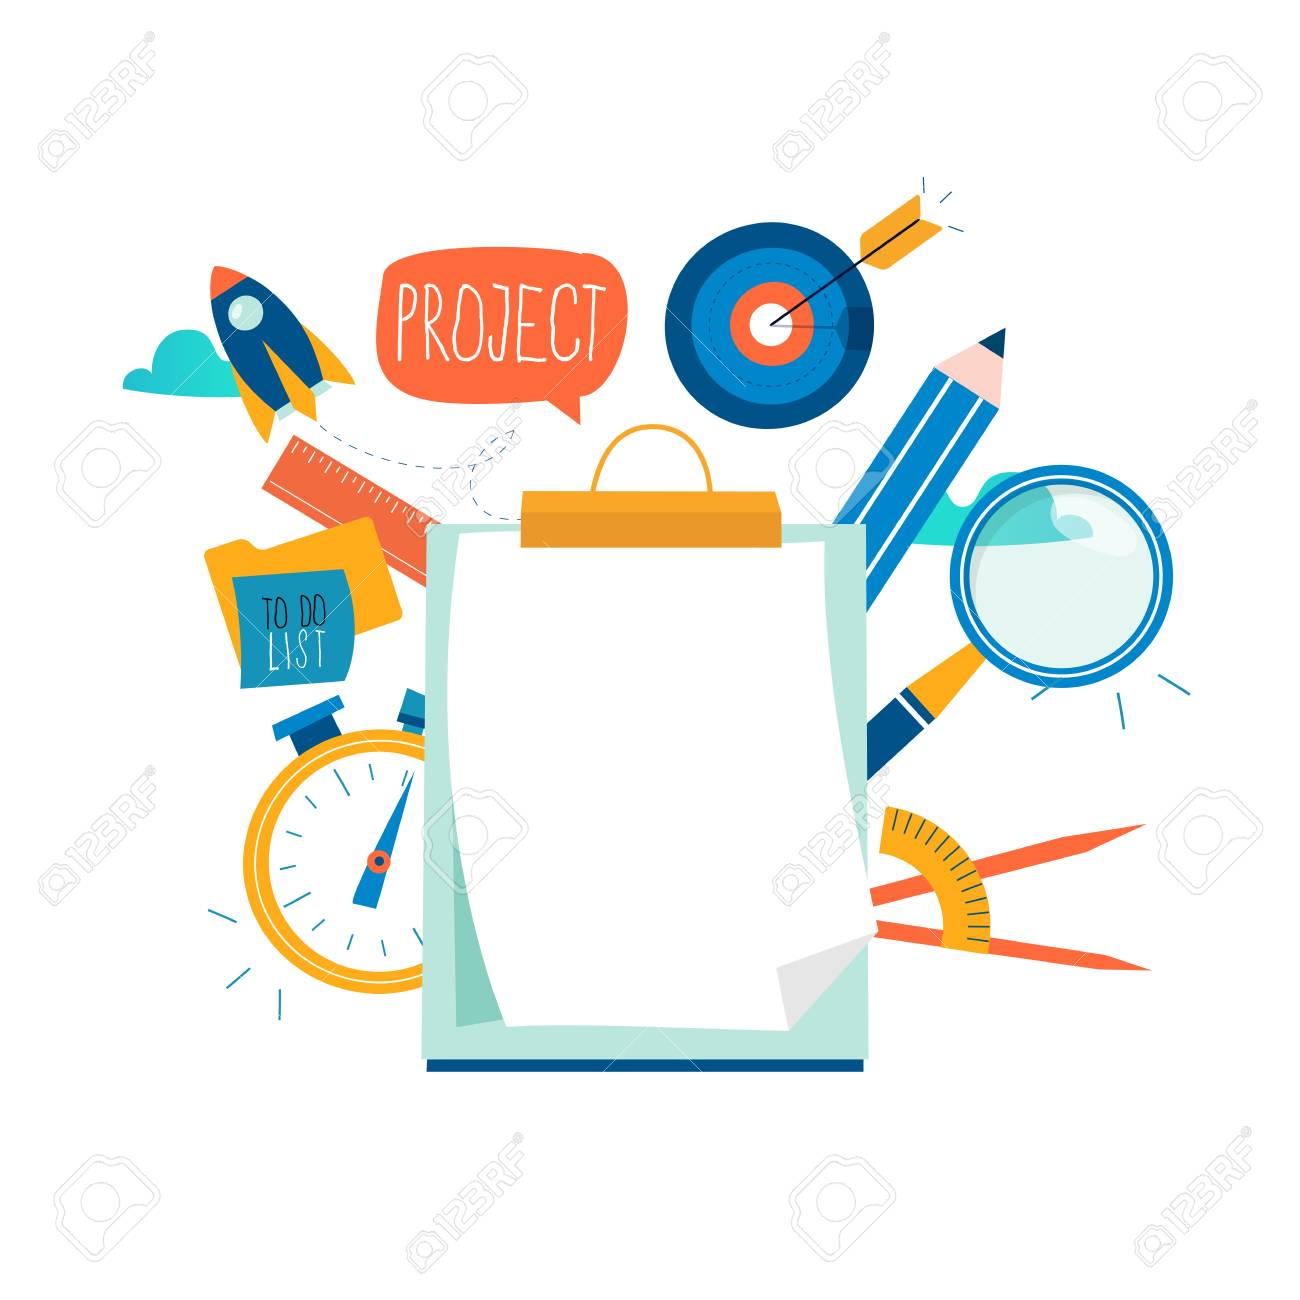 Evaluation, examination questionnaire, planning project, business assessment, data collecting flat vector illustration design. Questionnaire clipboard, project review for mobile and web graphics - 122214107